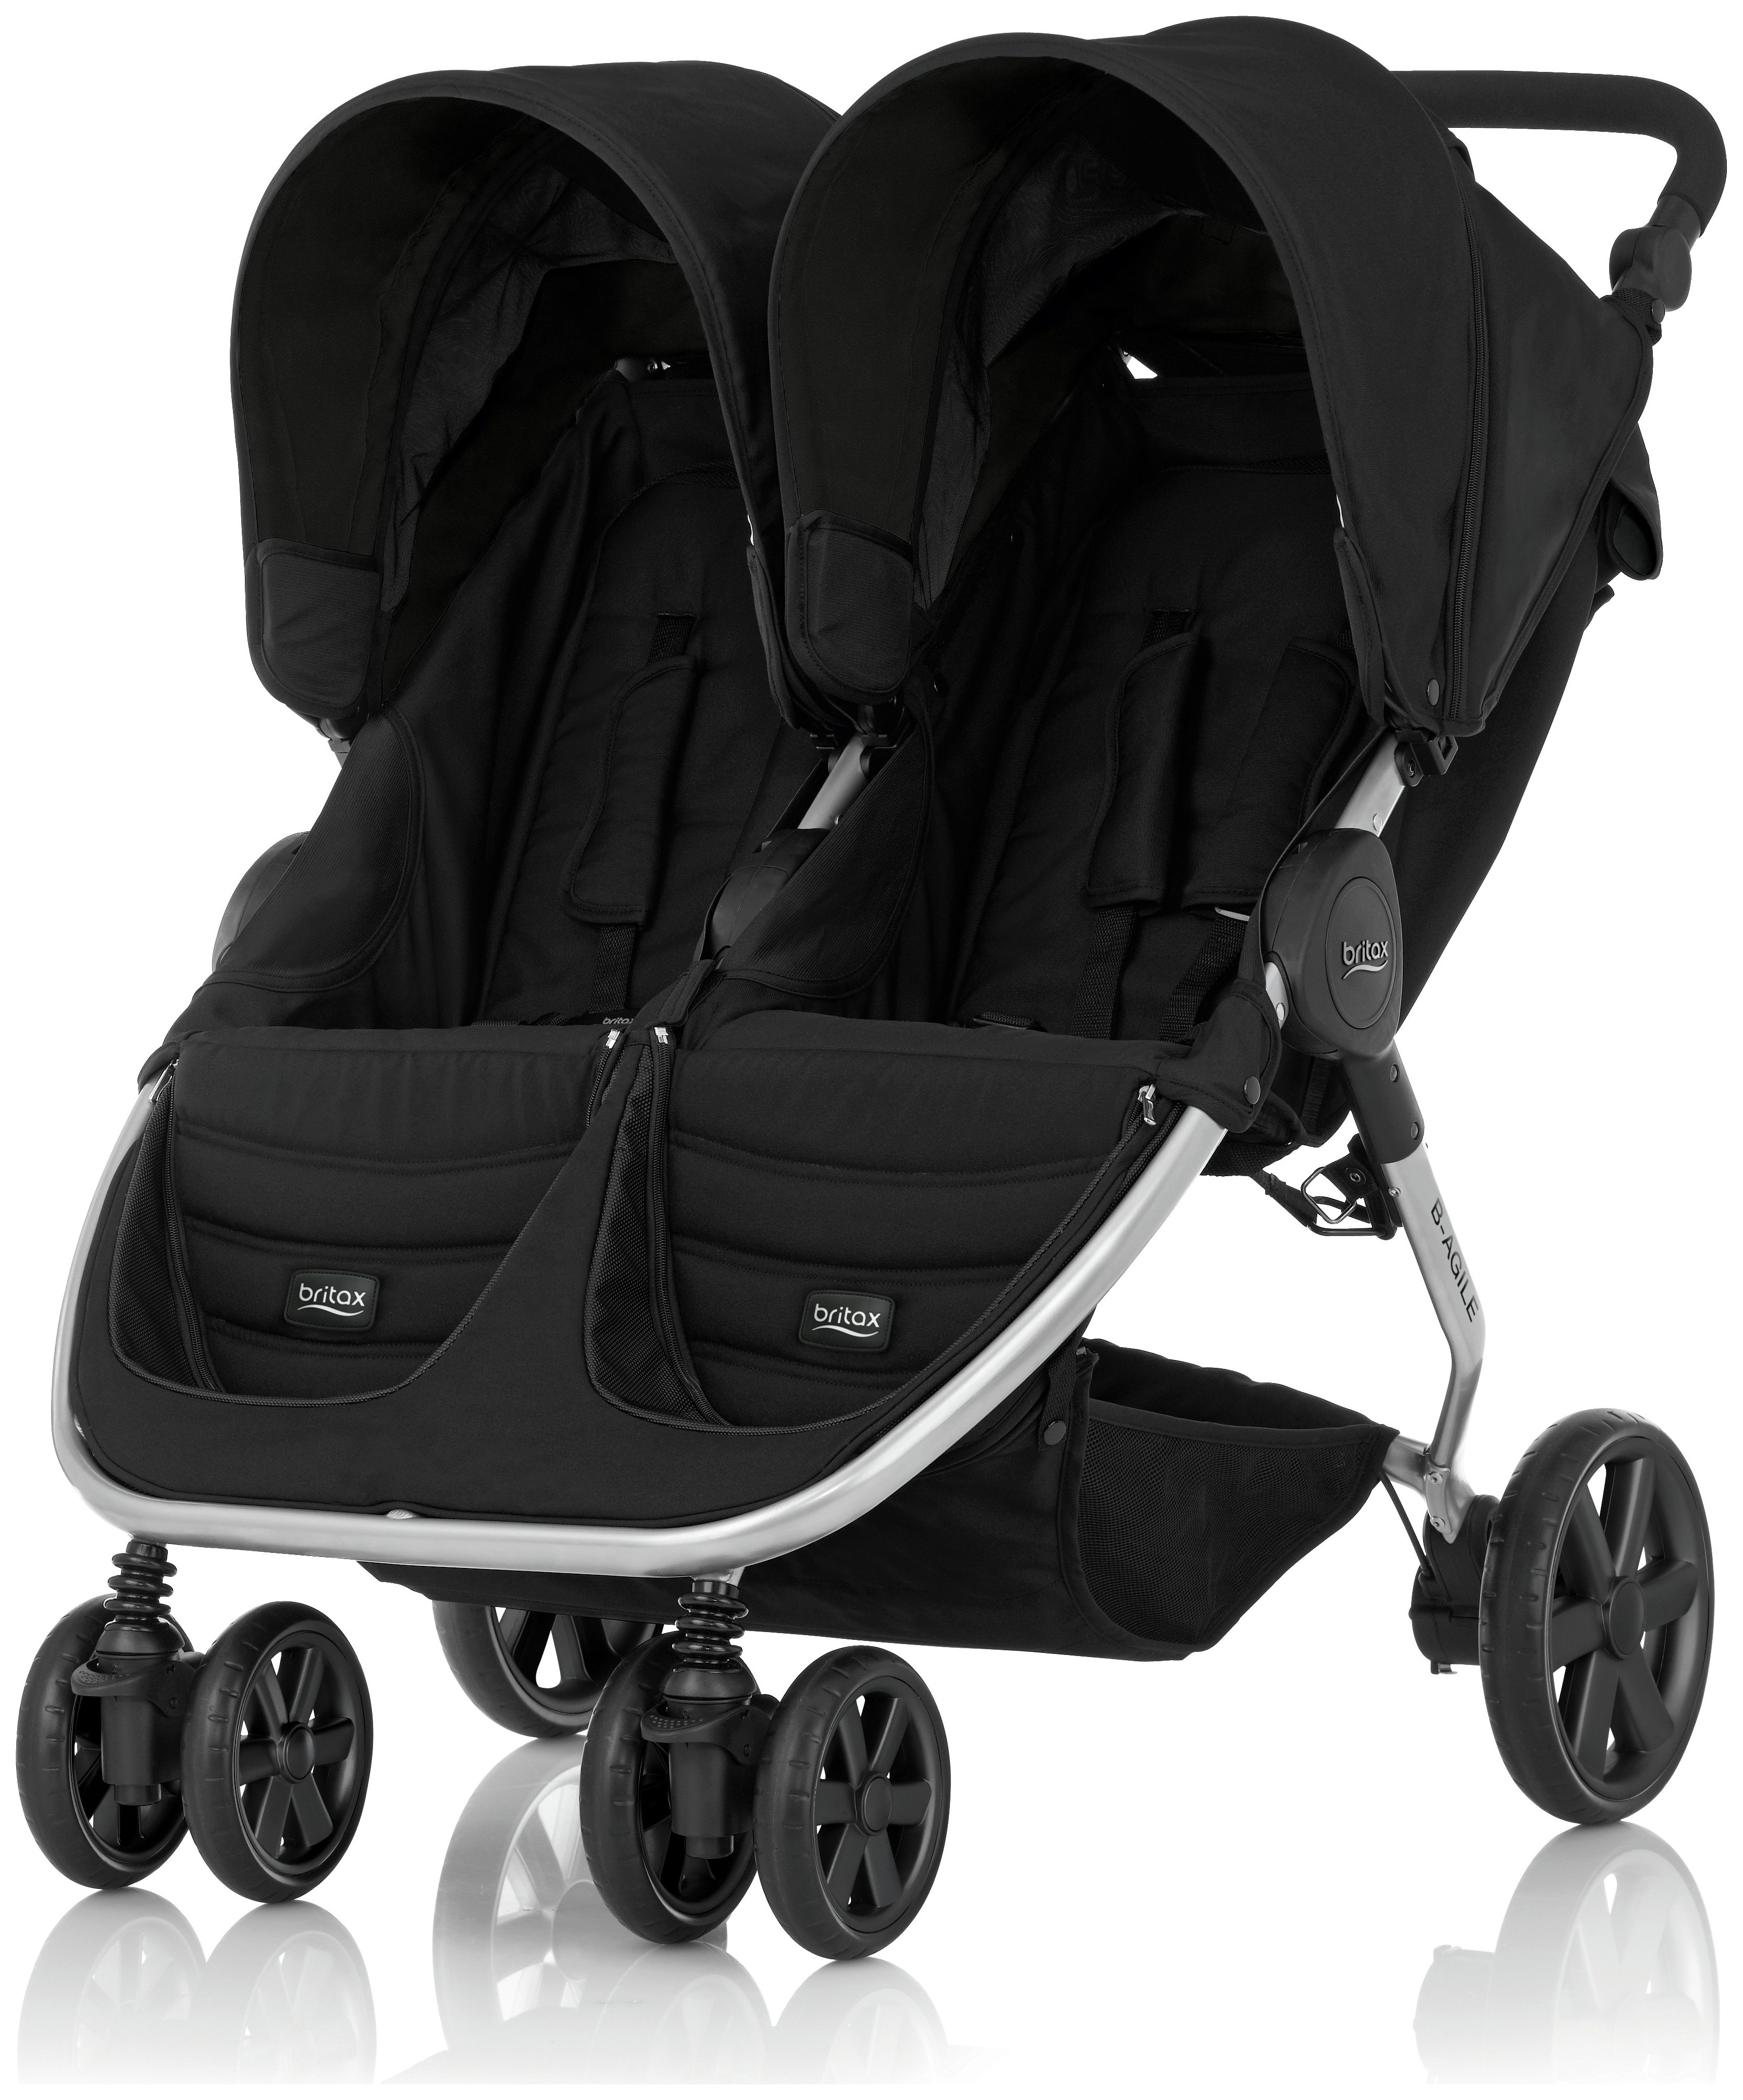 Image of Britax Romer B-AGILE DOUBLE pushchair – Cosmos Black